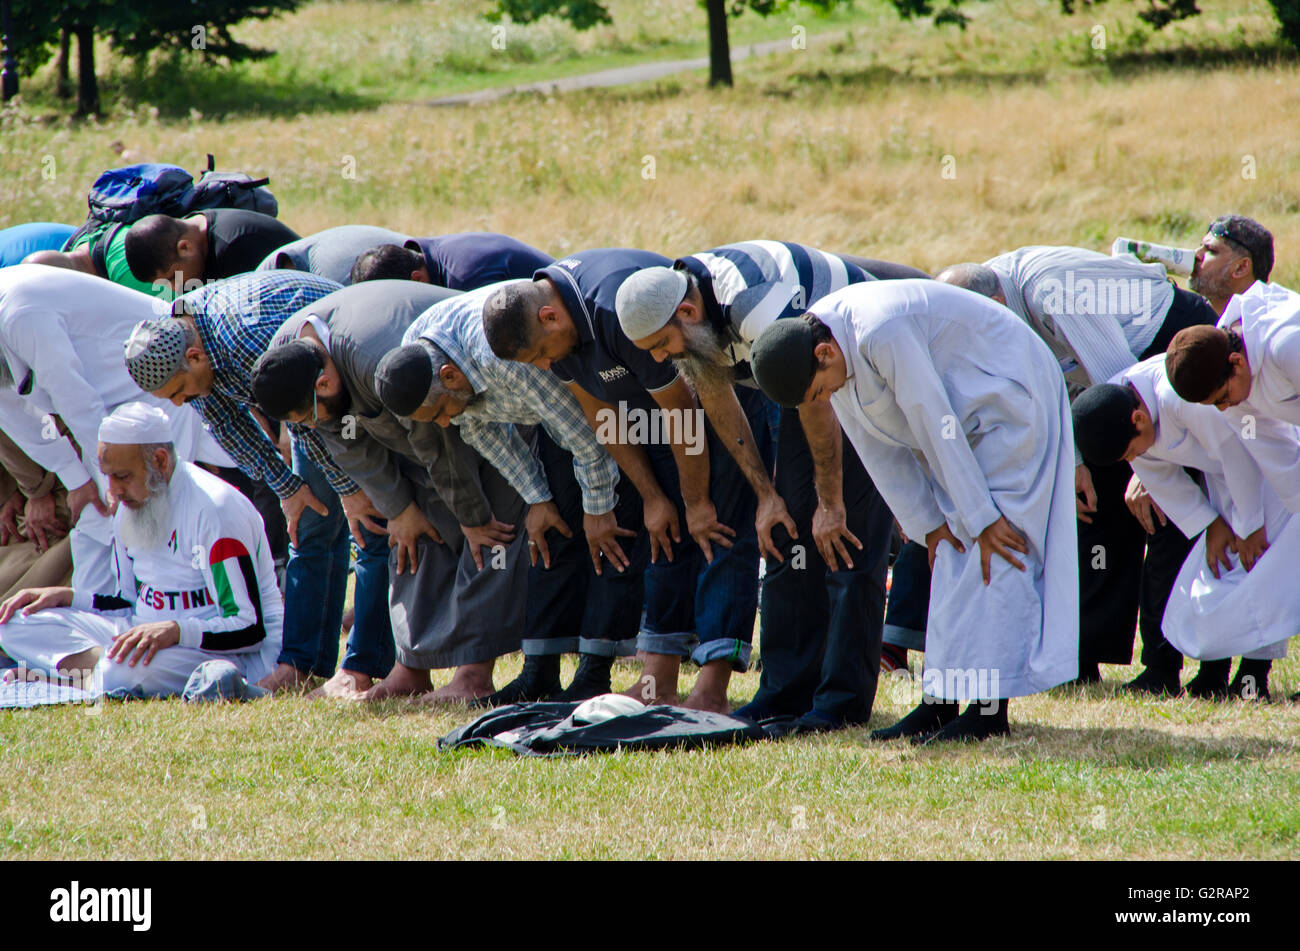 Muslims Praying in Hyde Park Following a March Through London - Stock Image